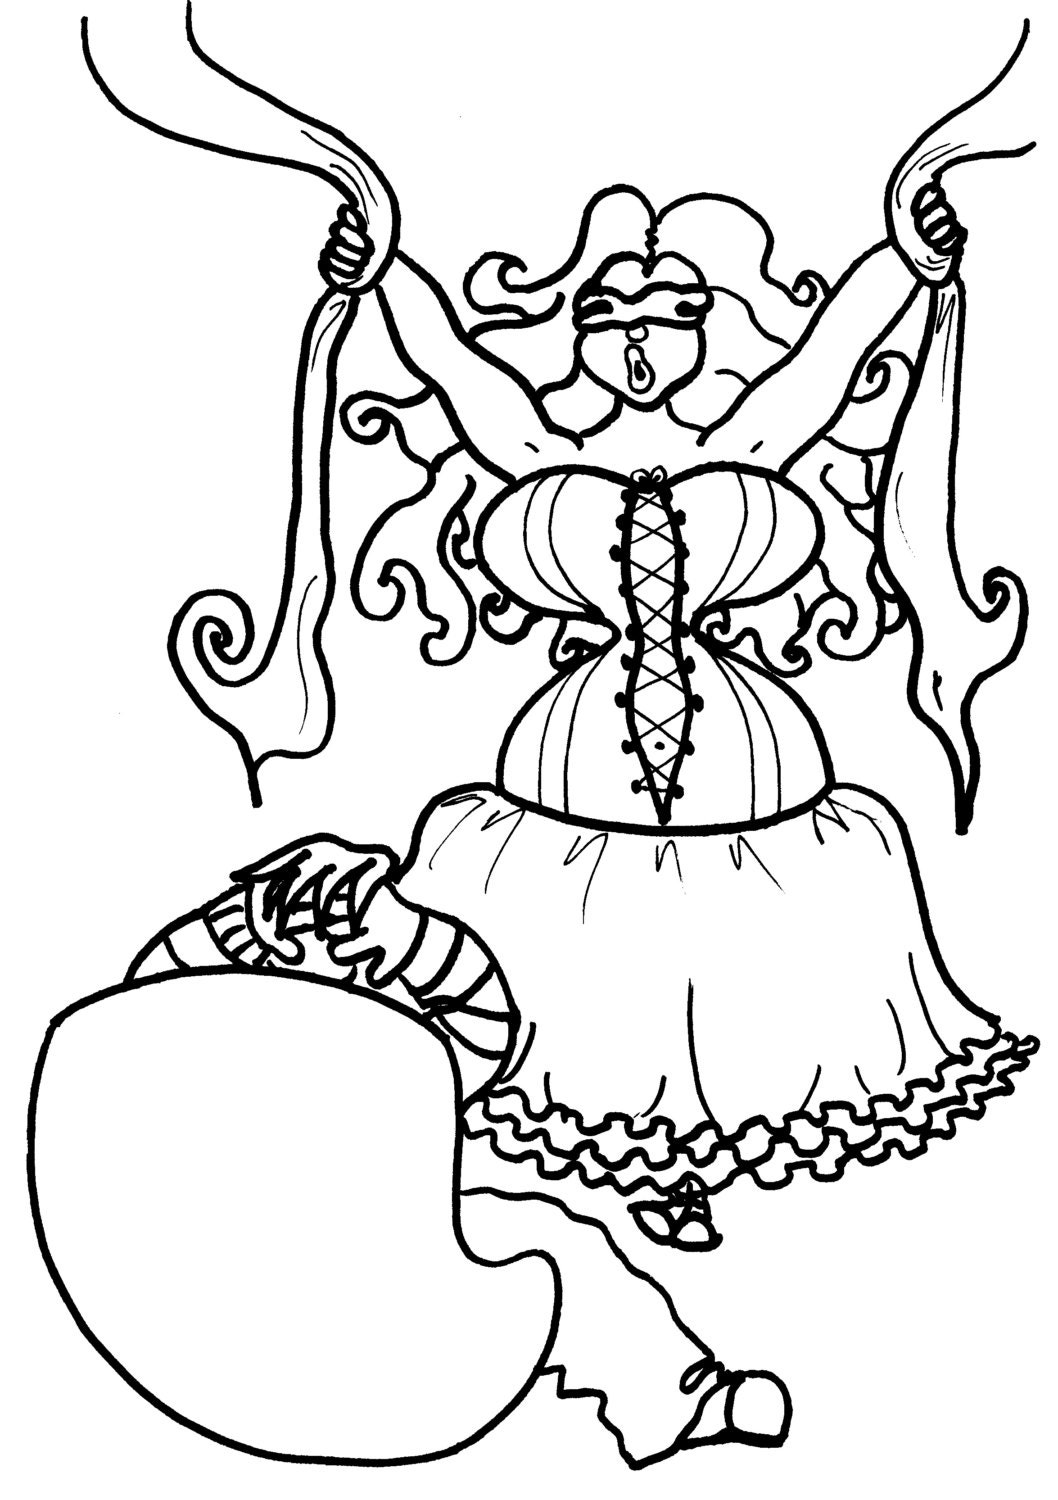 coloring pages roseart lampshades - photo#22